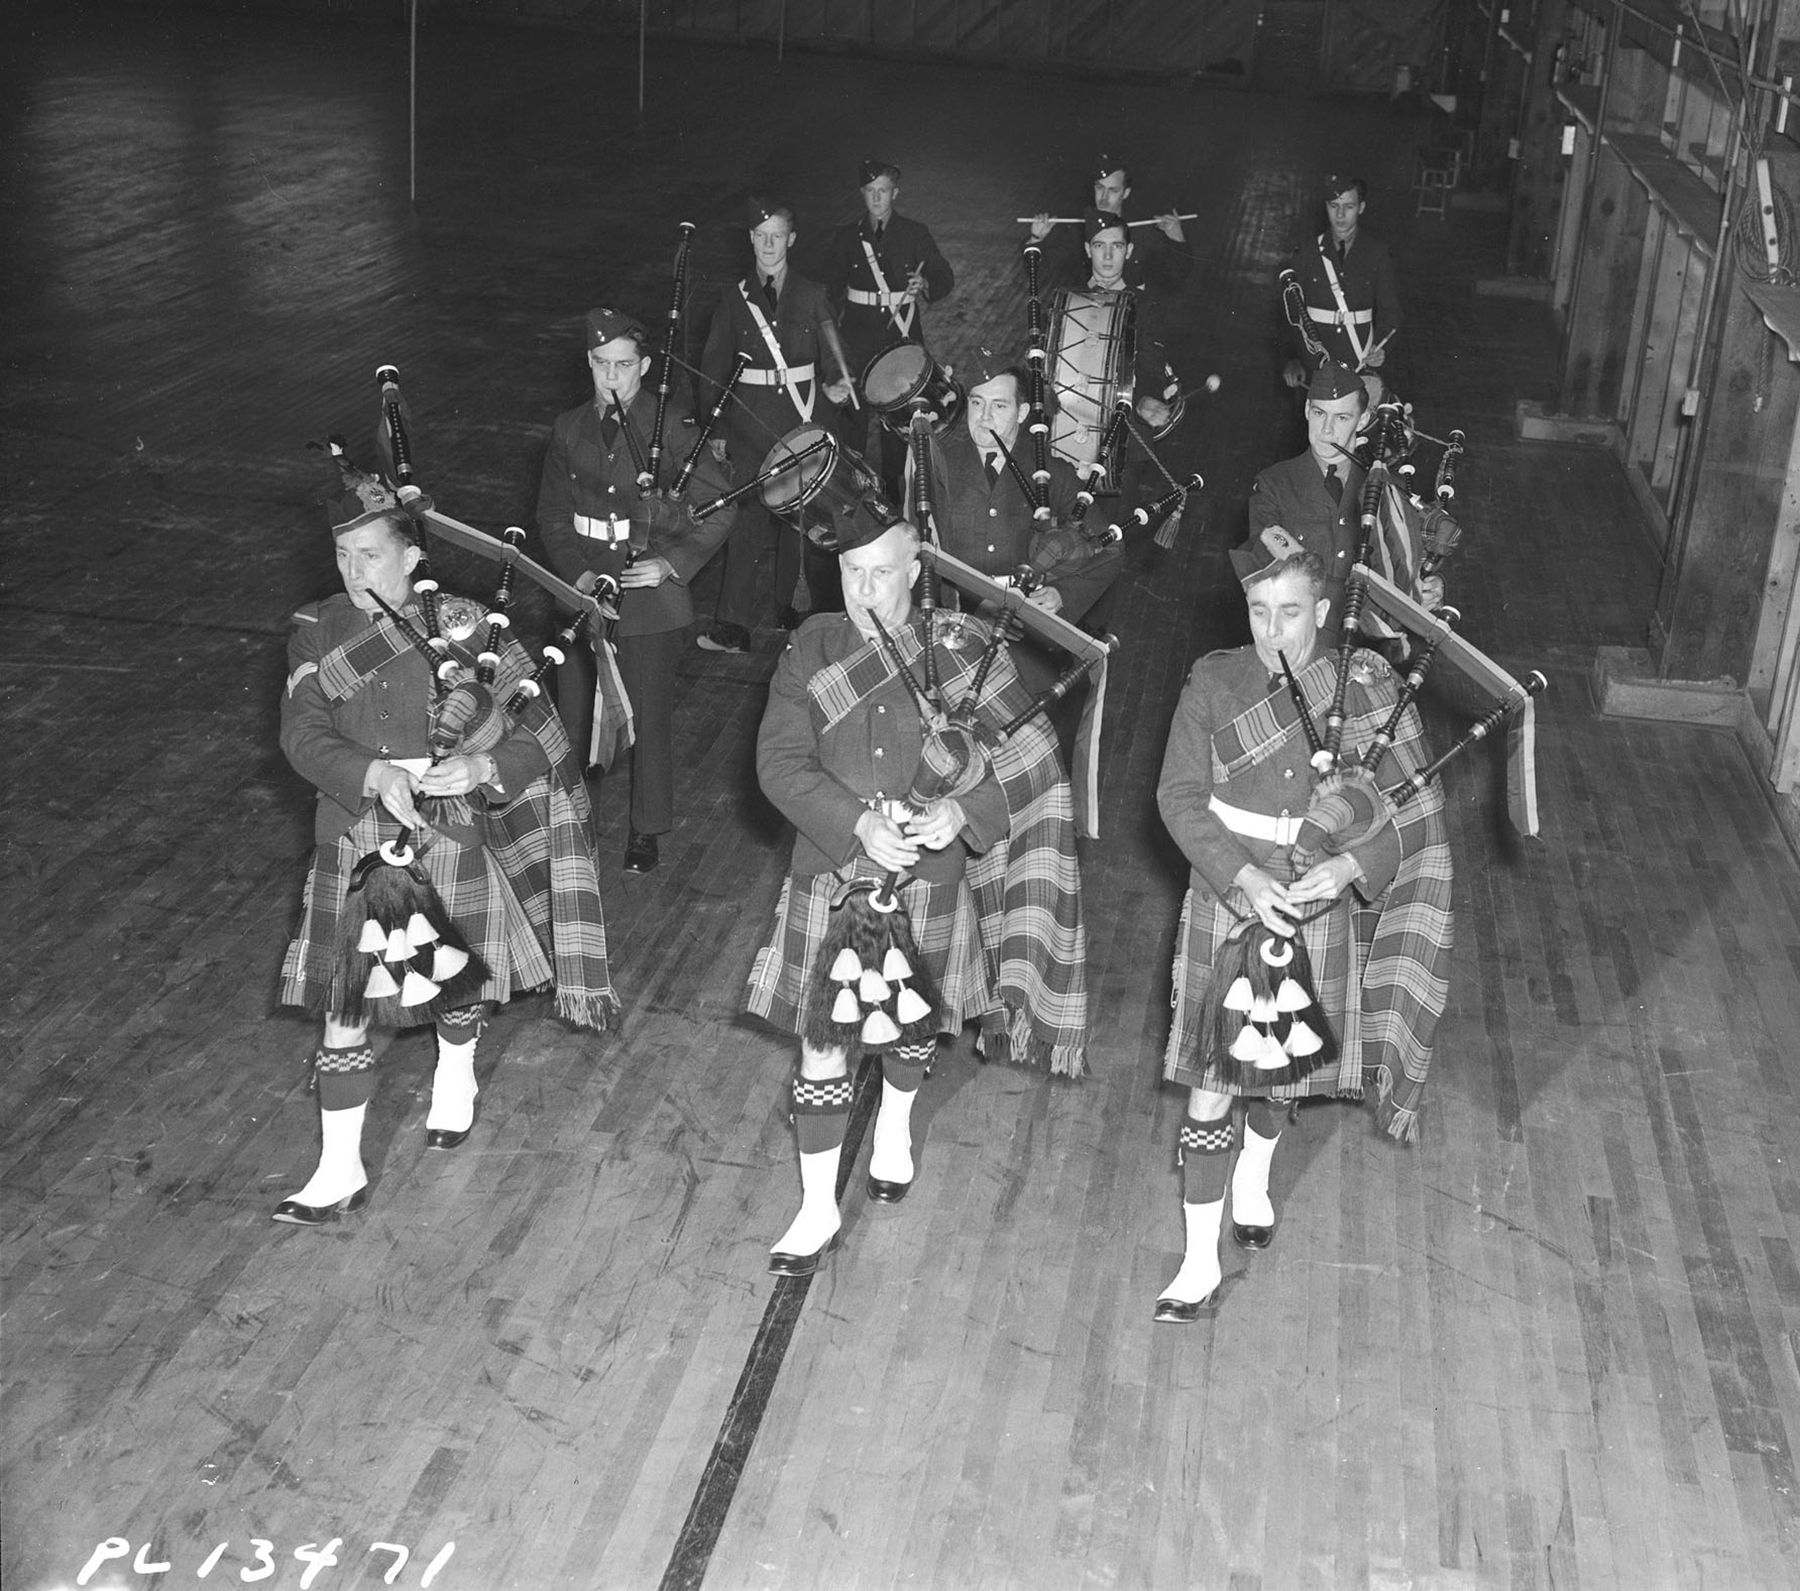 Members of the No. 9 Service Flying Training School Pipe Band in Centralia, Ontario, parade in full regalia on February 24, 1943. PHOTO: DND Archives, PL-13471